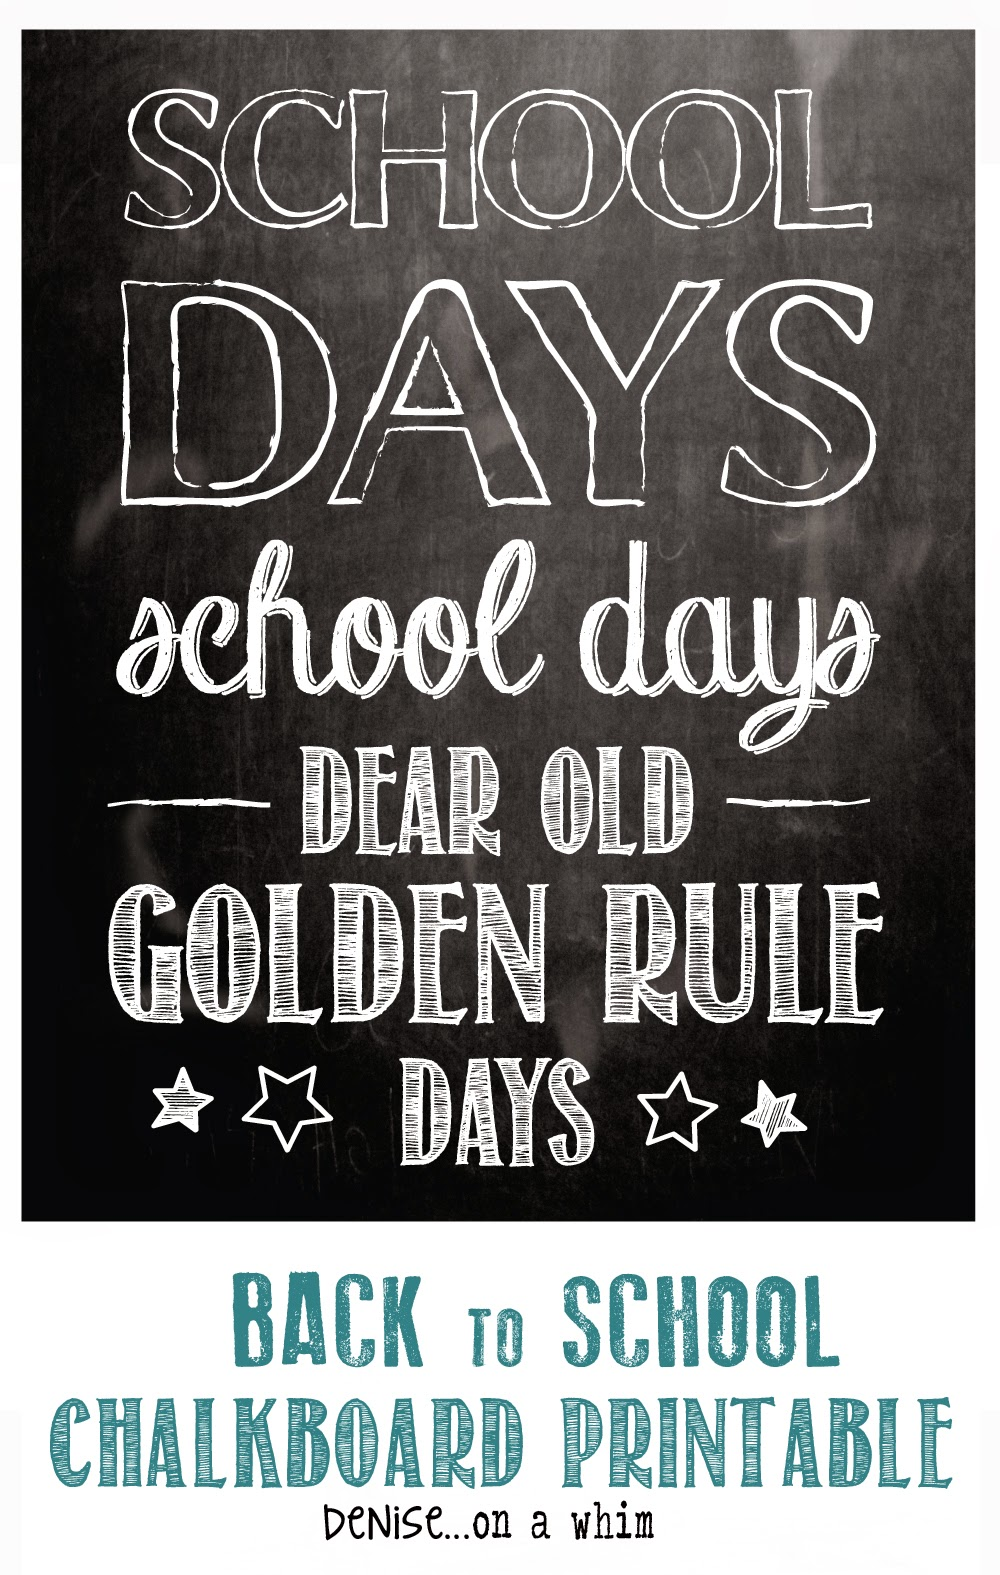 Free Back to School Chalkboard Printable from Denise on a Whim